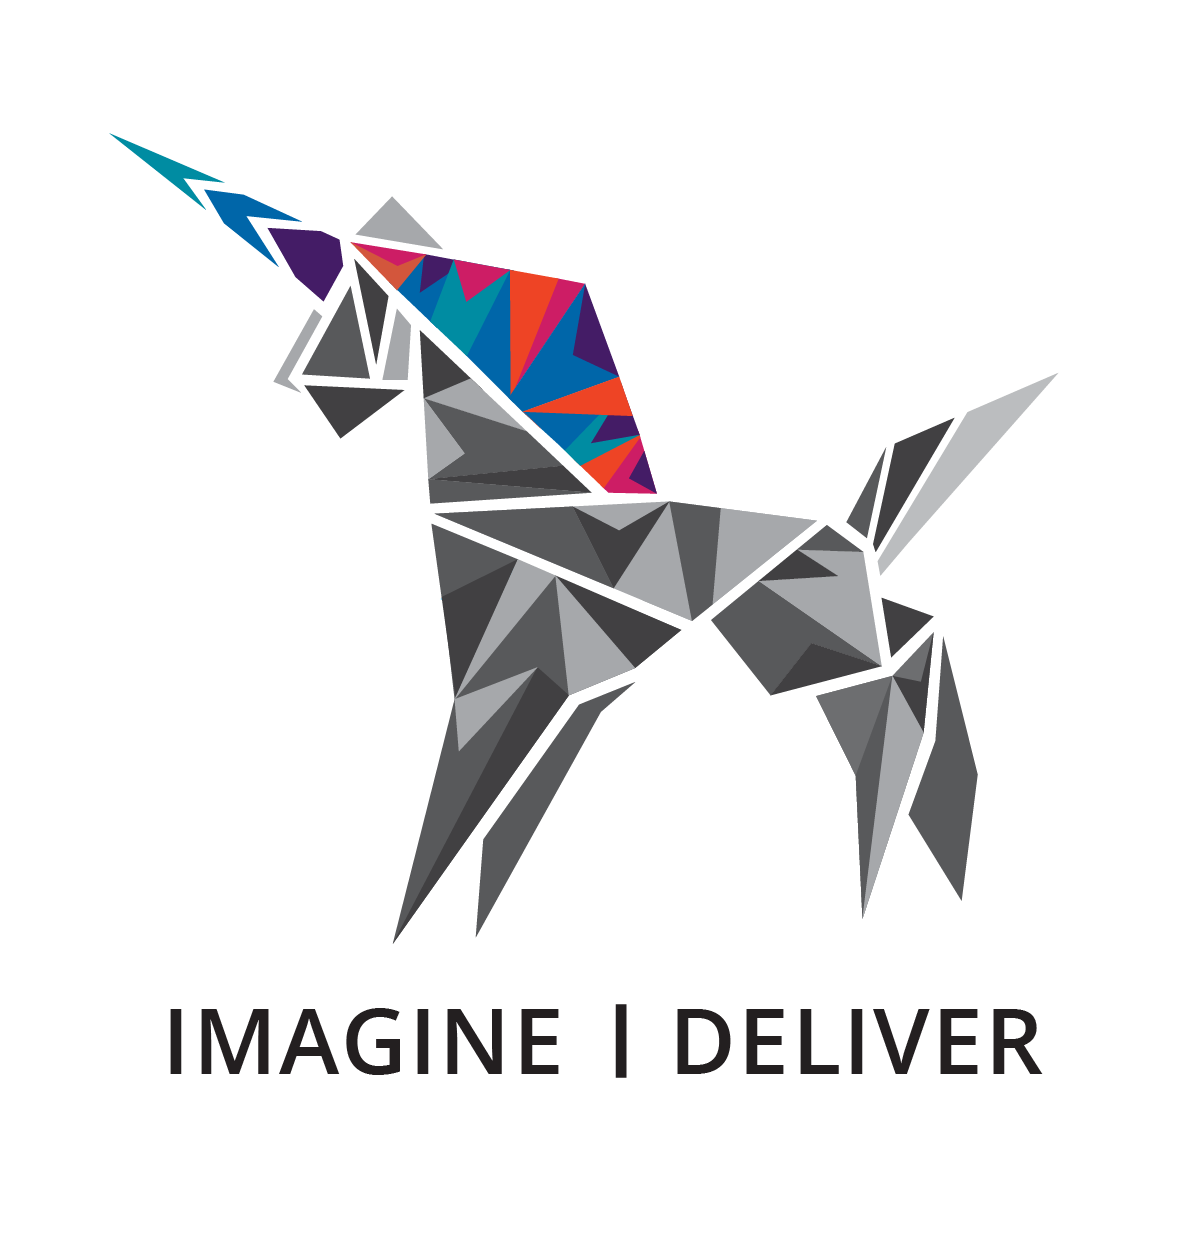 Logo for Imagine Deliver